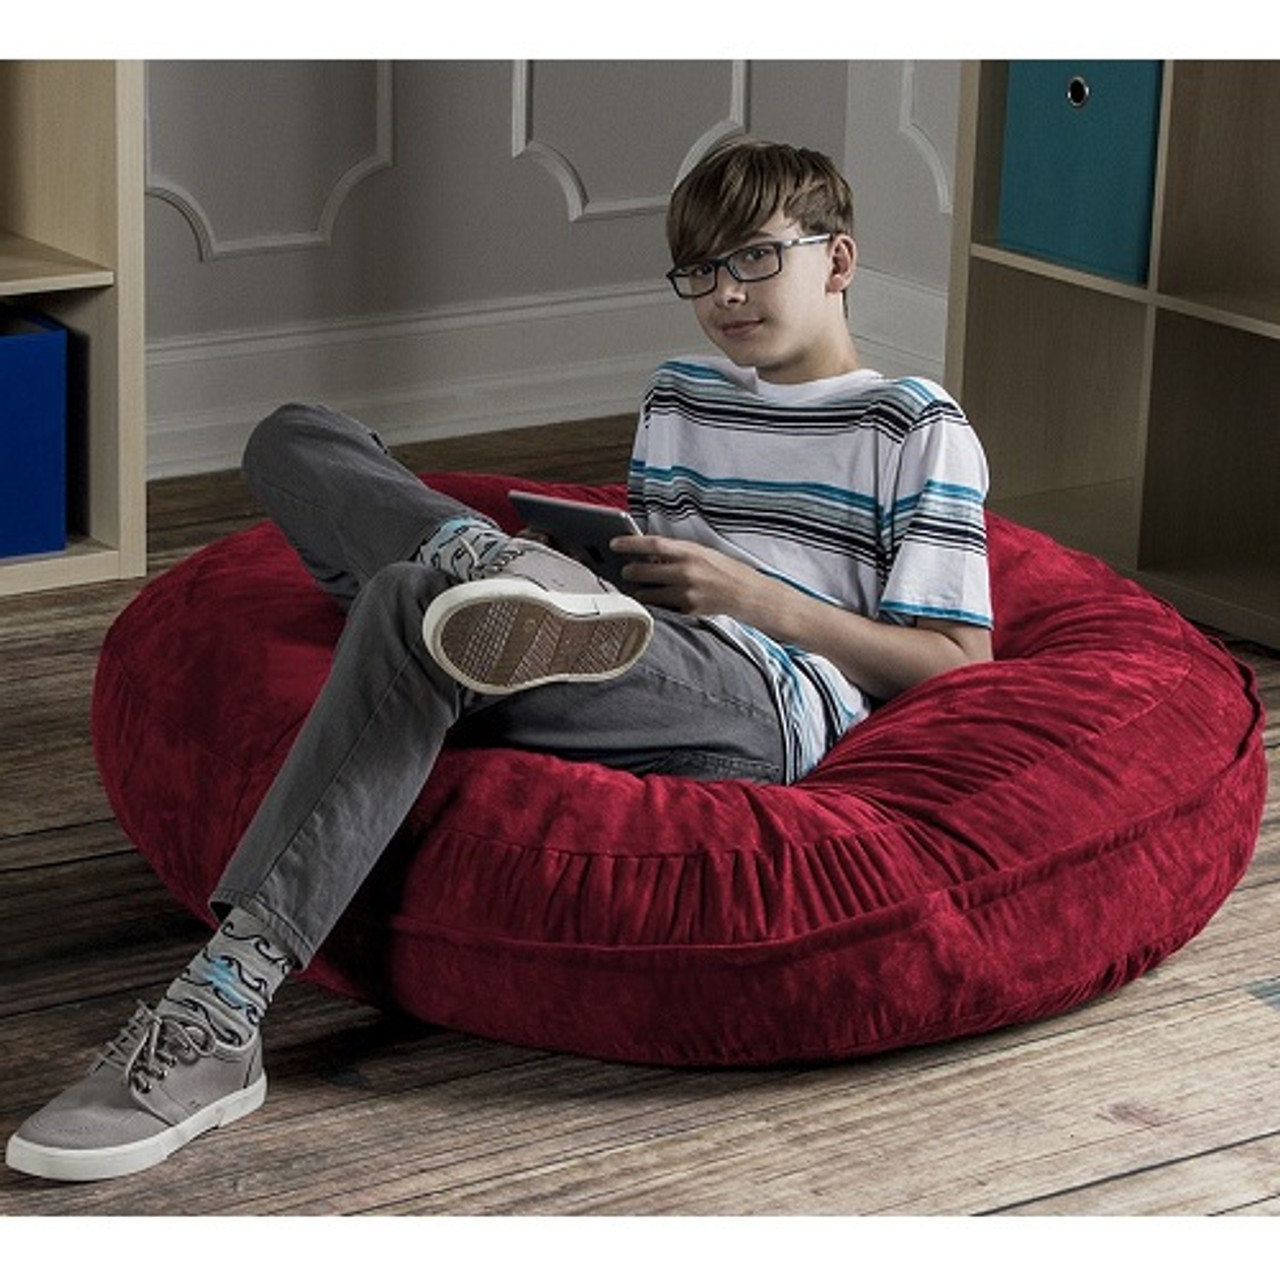 Calming Beanbag Chair For Teens With Autism.